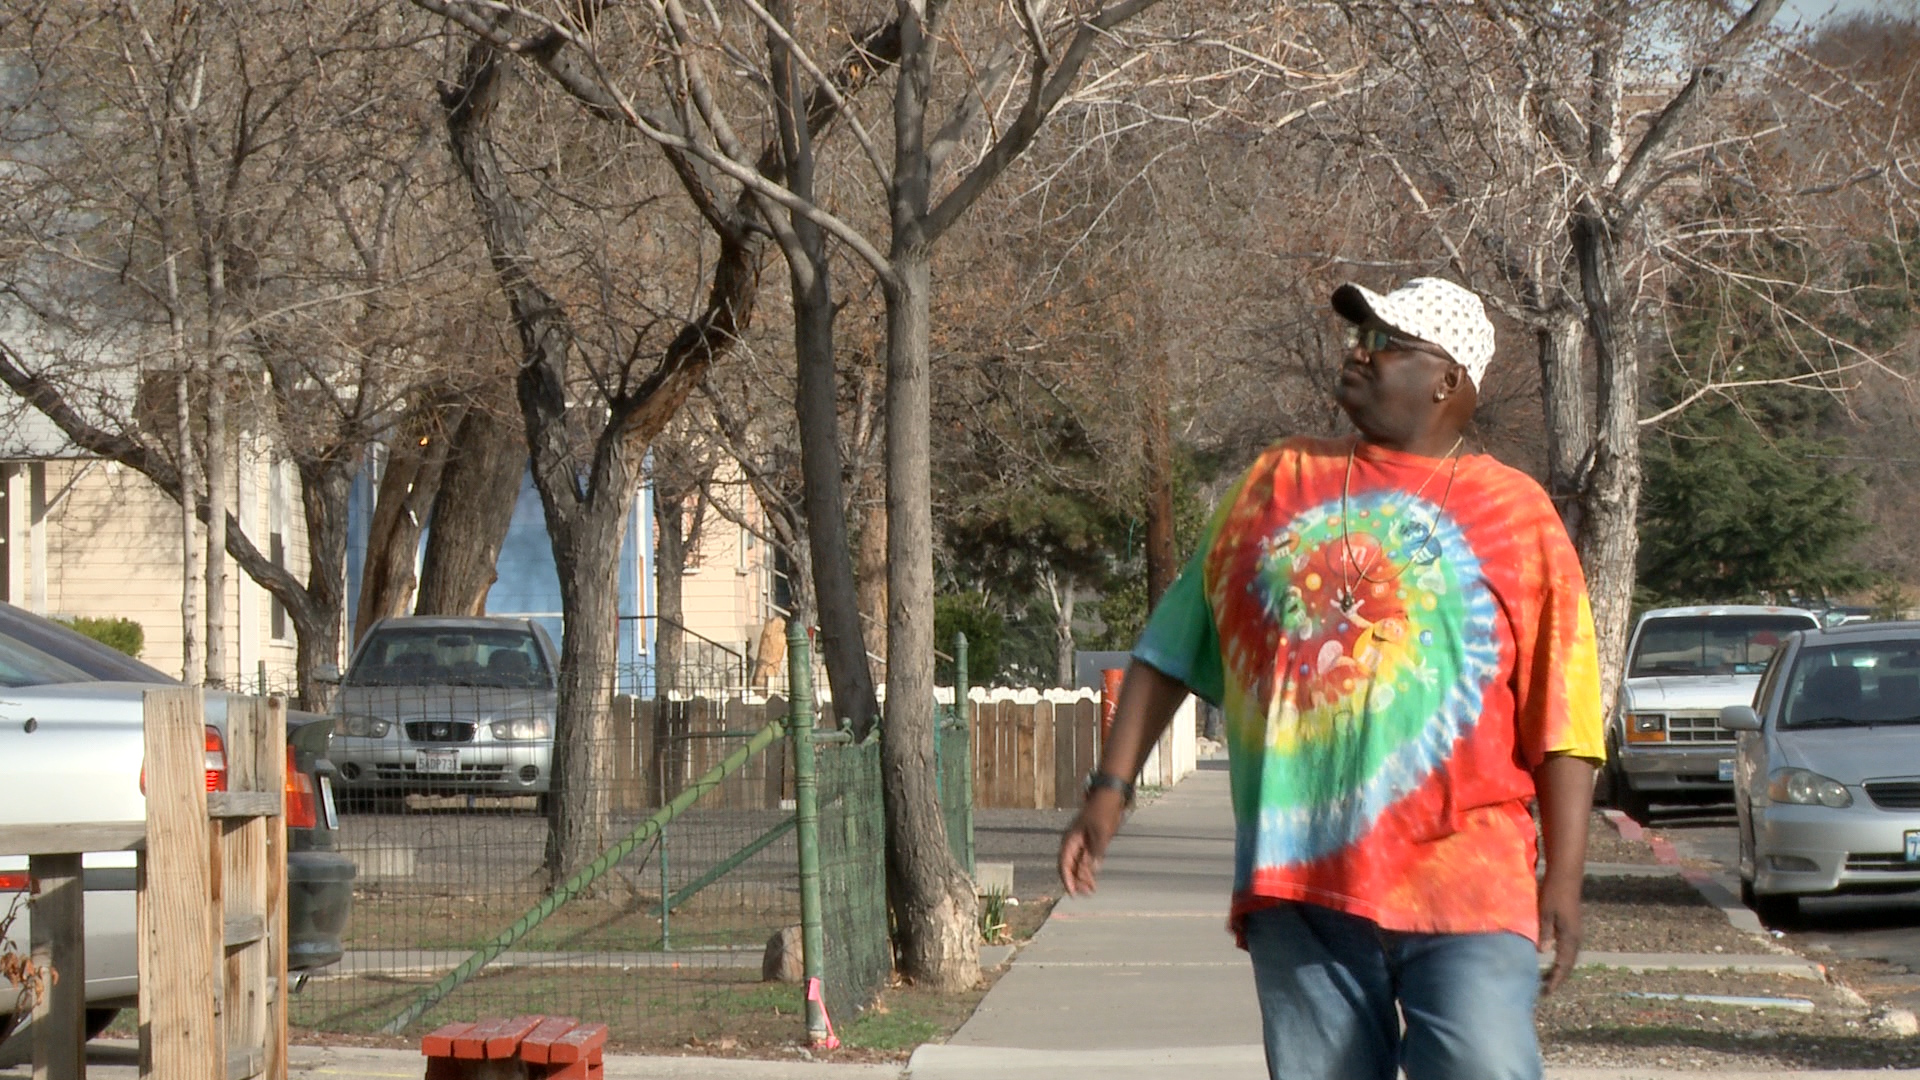 A Renoite wonders where all the people will go. Dozens and dozens of residents, from students, to families, to old retirees, currently live in this downtown Reno block set for demolition.